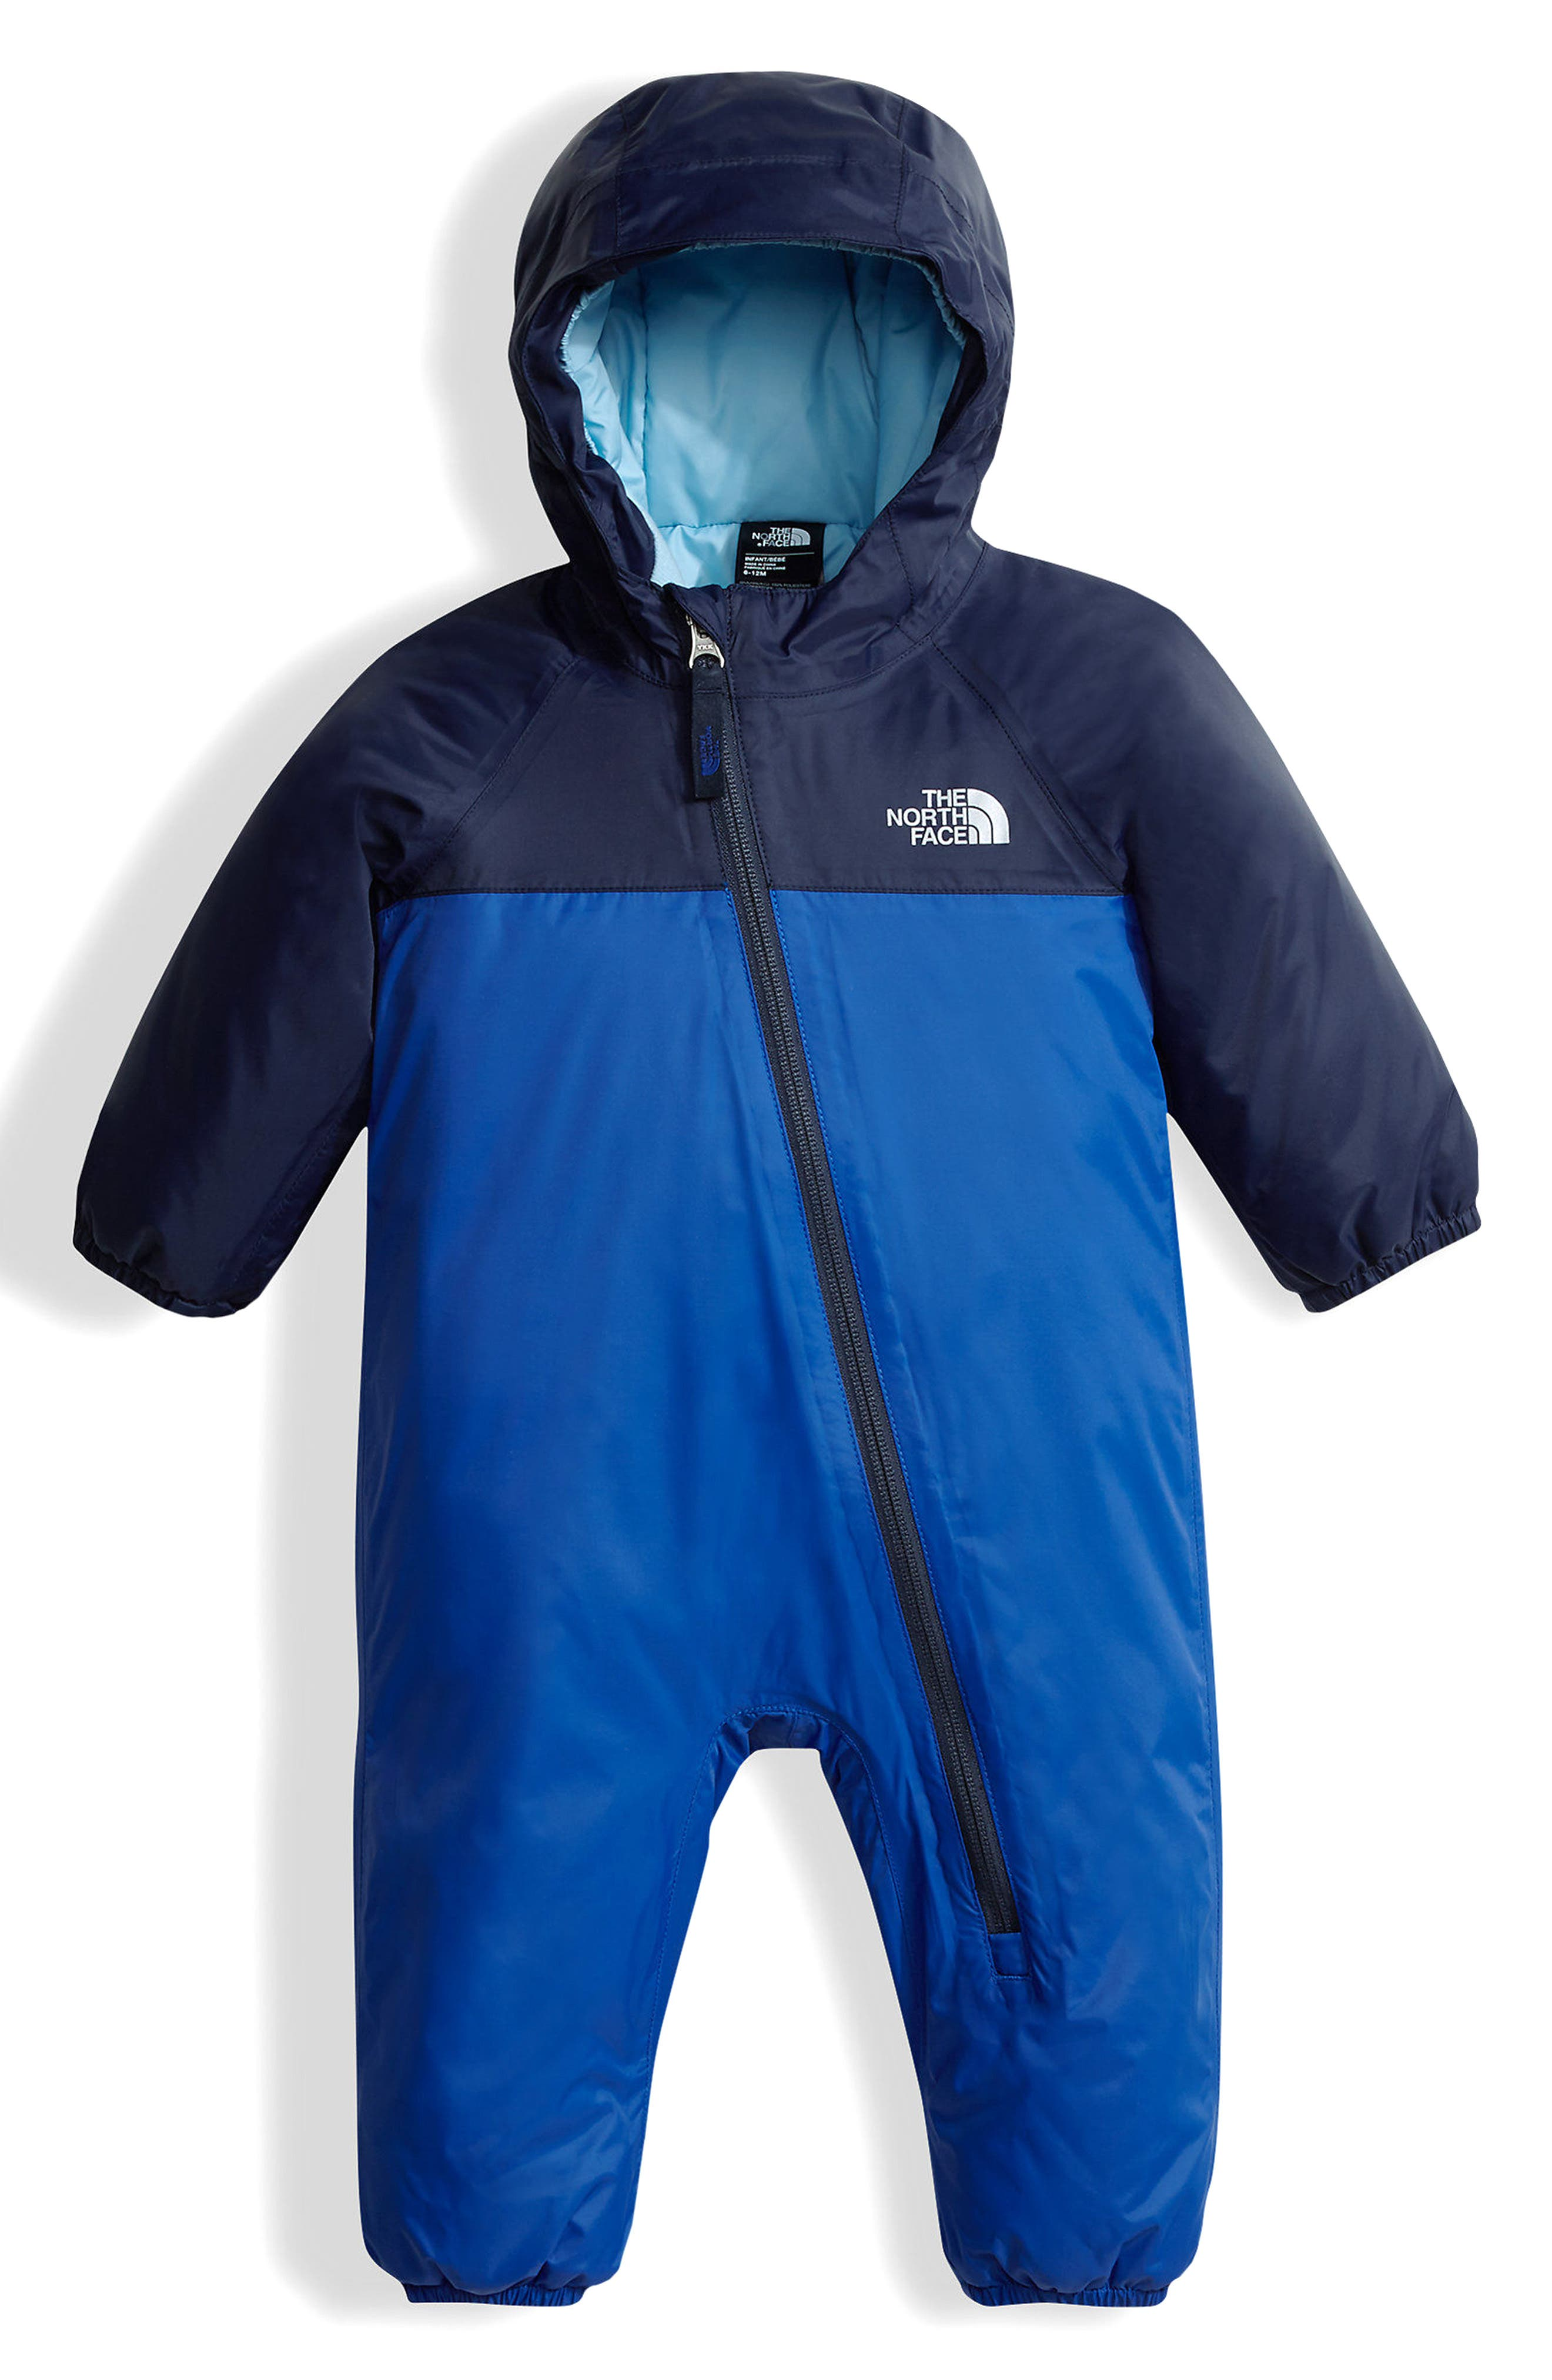 The North Face Tailout TriClimate® 3-in-1 One-Piece Rain Suit (Baby Boys)